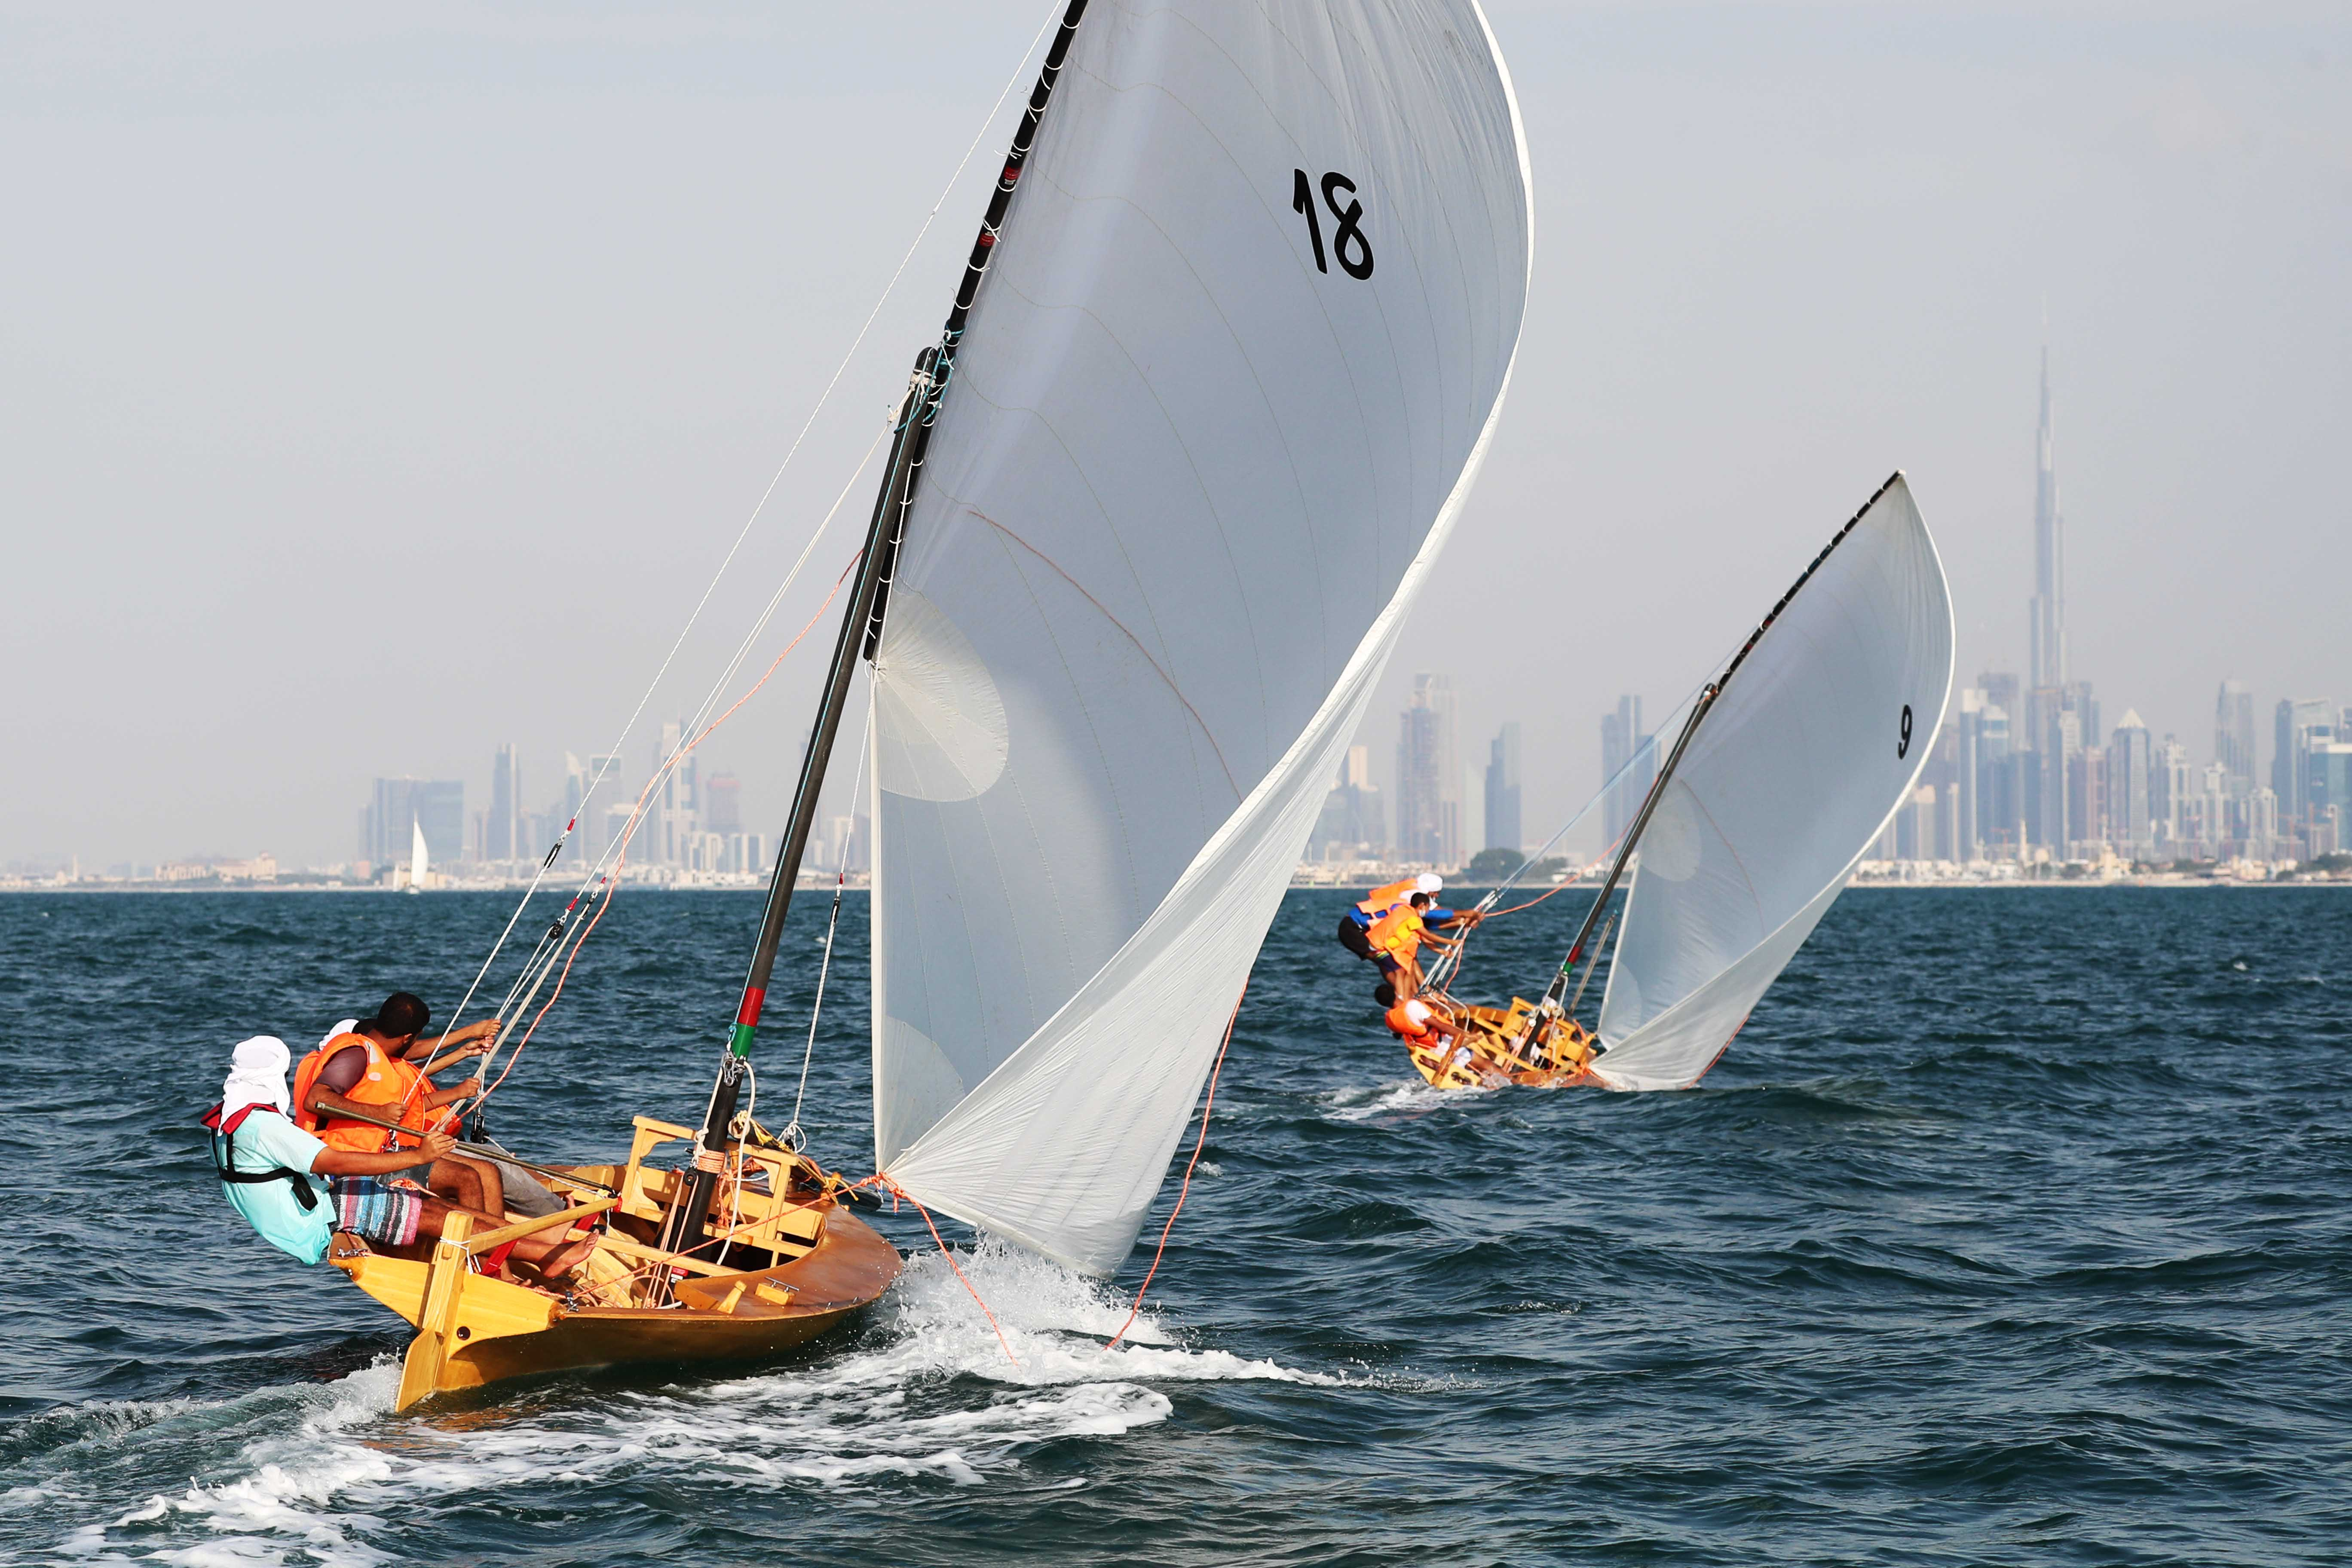 Registration closes today for the 22ft Dhow Sailing Race